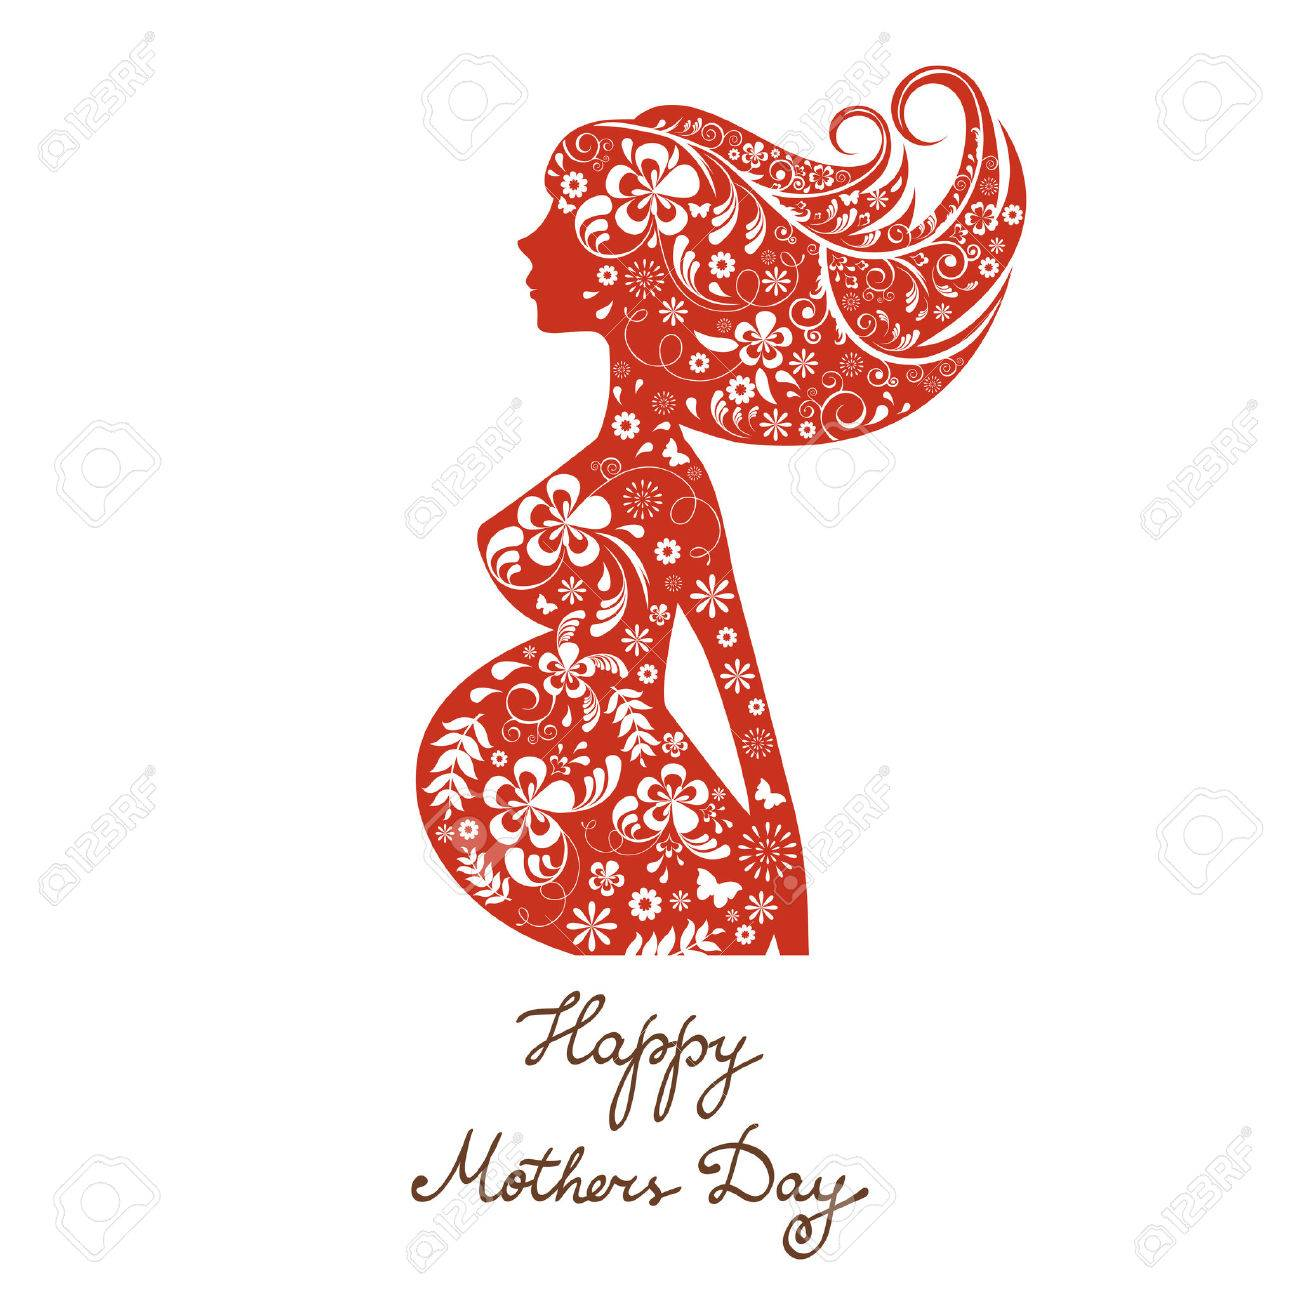 Beautiful mom to be floral silhouette happy mothers day card beautiful mom to be floral silhouette happy mothers day card stock vector 44899844 kristyandbryce Image collections